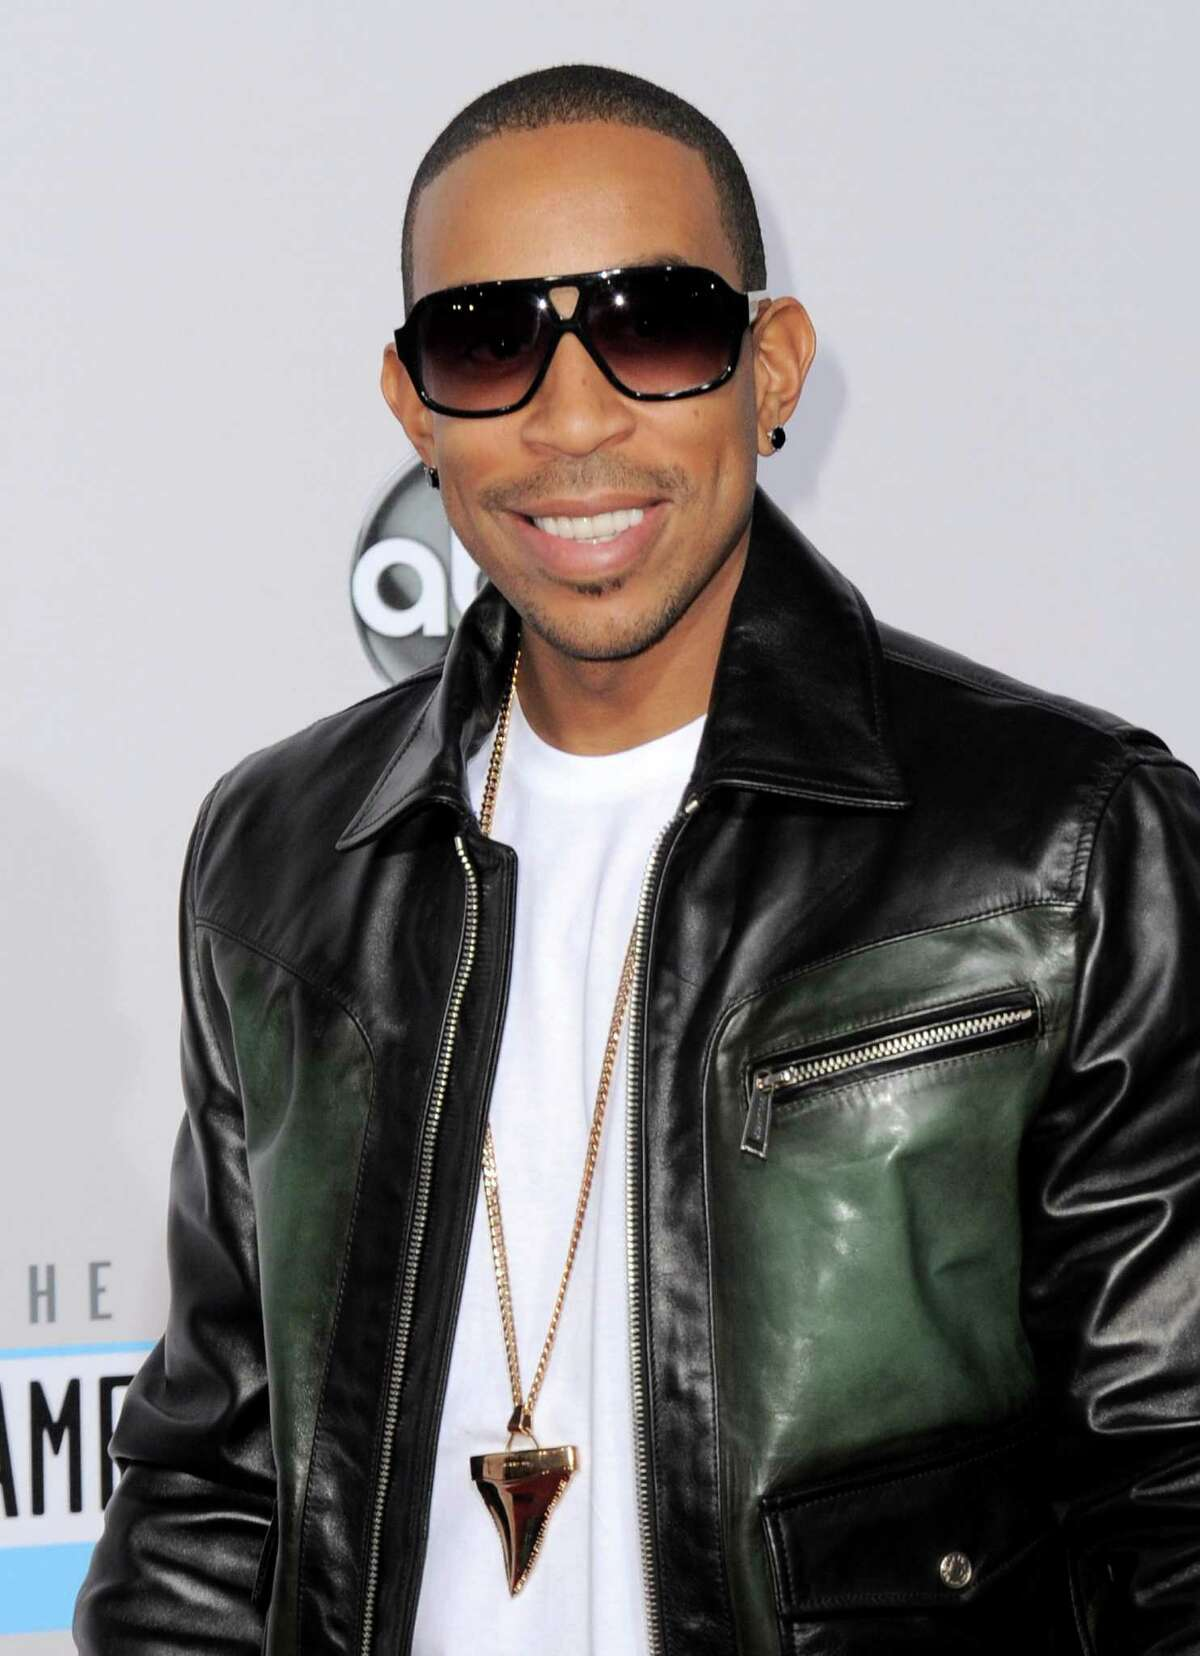 FILE - This Nov. 18, 2012 file photo shows Ludacris, born Chris Bridges, at the 40th Anniversary American Music Awards, in Los Angeles. Ludacris will host the 2014 Billboard Music Awards. The rapper-actor will host the awards show, airing live on ABC from the MGM Grand Garden Arena in Las Vegas on Sunday, dick clark productions announced Wednesday. (Photo by Jordan Strauss/Invision/AP, File) ORG XMIT: NYET306